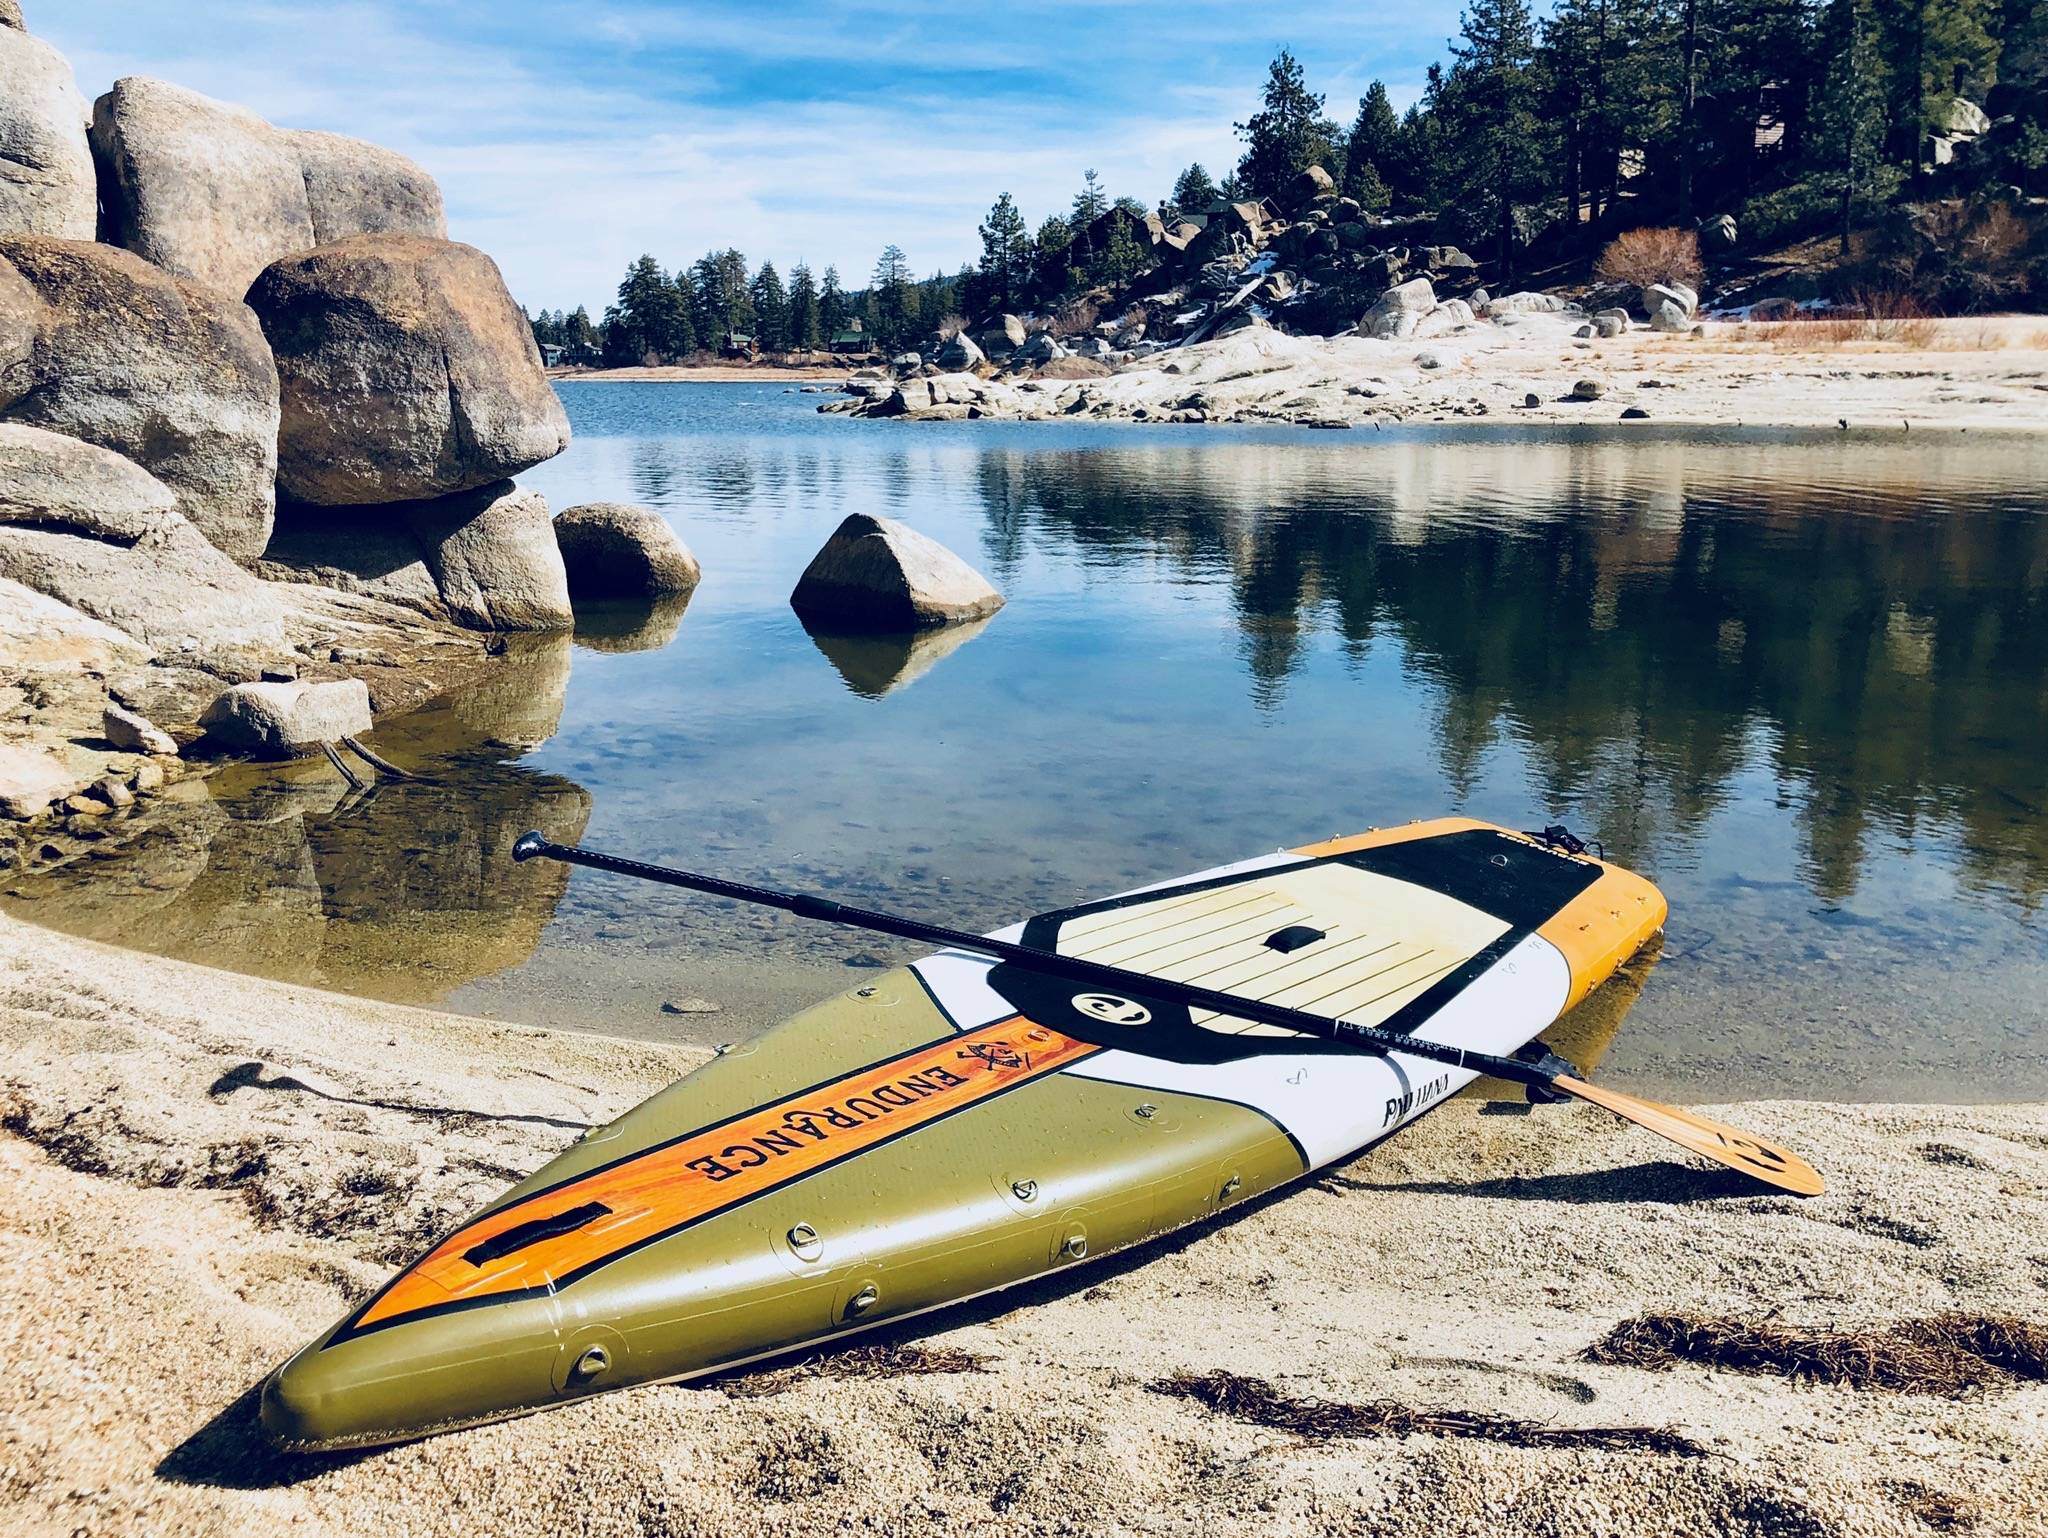 Inflatable SUP board on the lake with a paddle